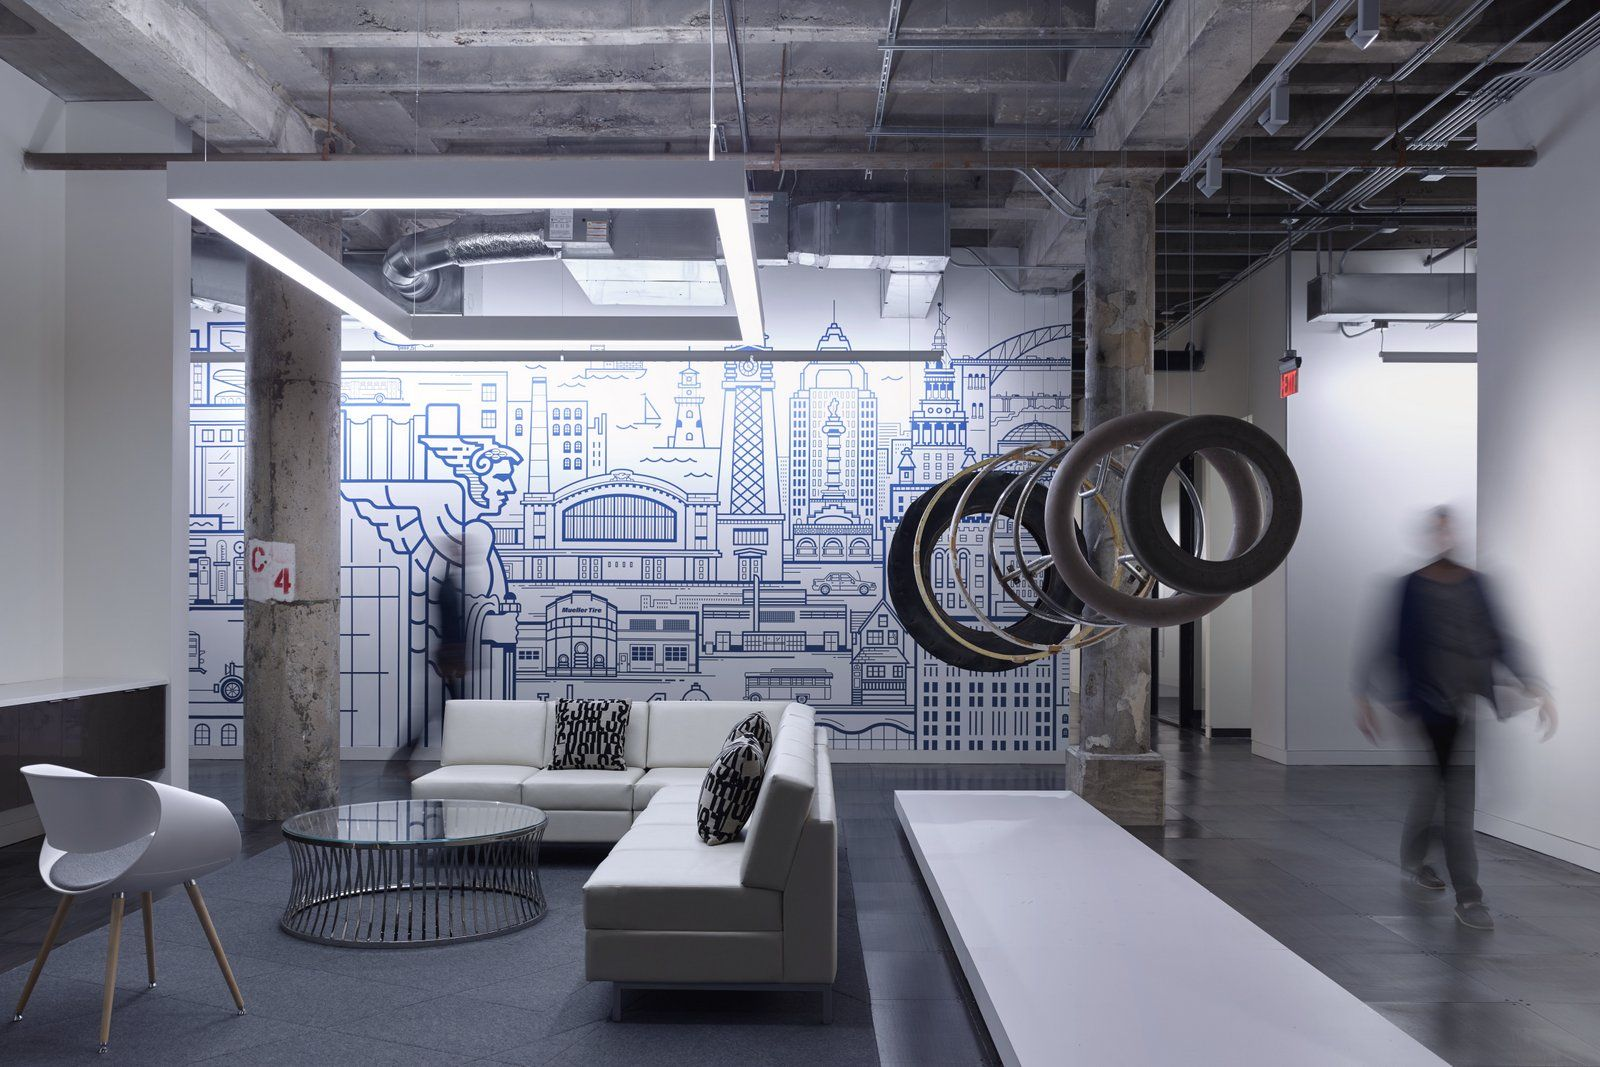 Dealer Tire Offices   Cleveland   Office Snapshots Office Interior Design,  Office Interiors, Office